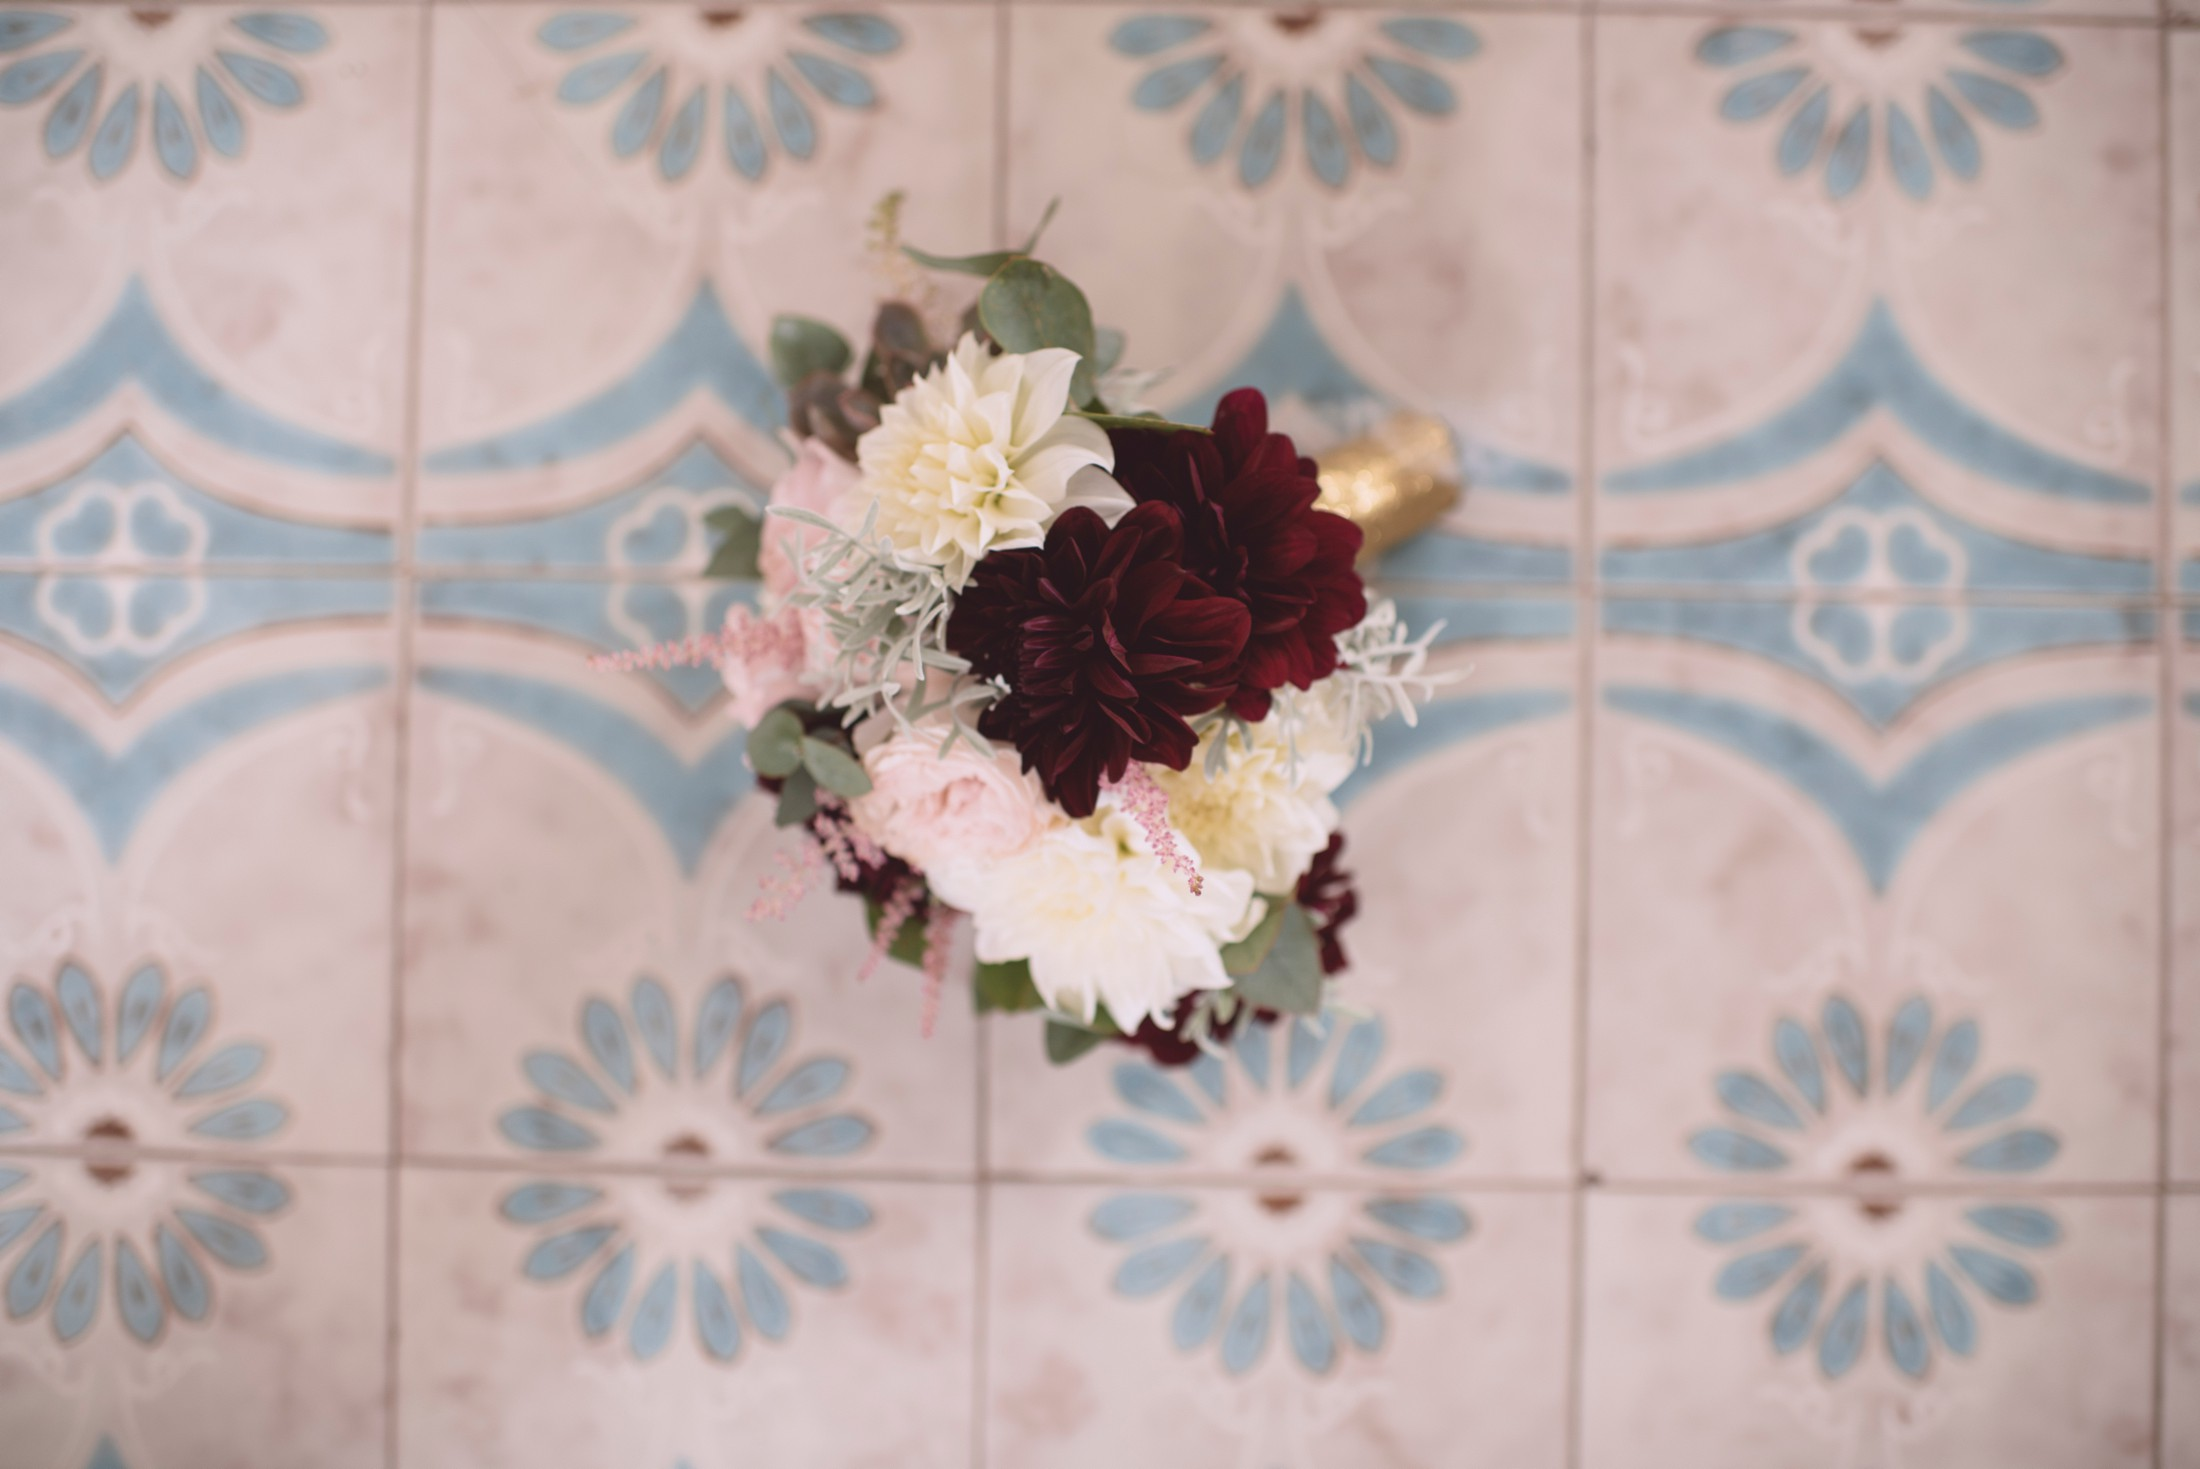 positano wedding bouquet on the floor